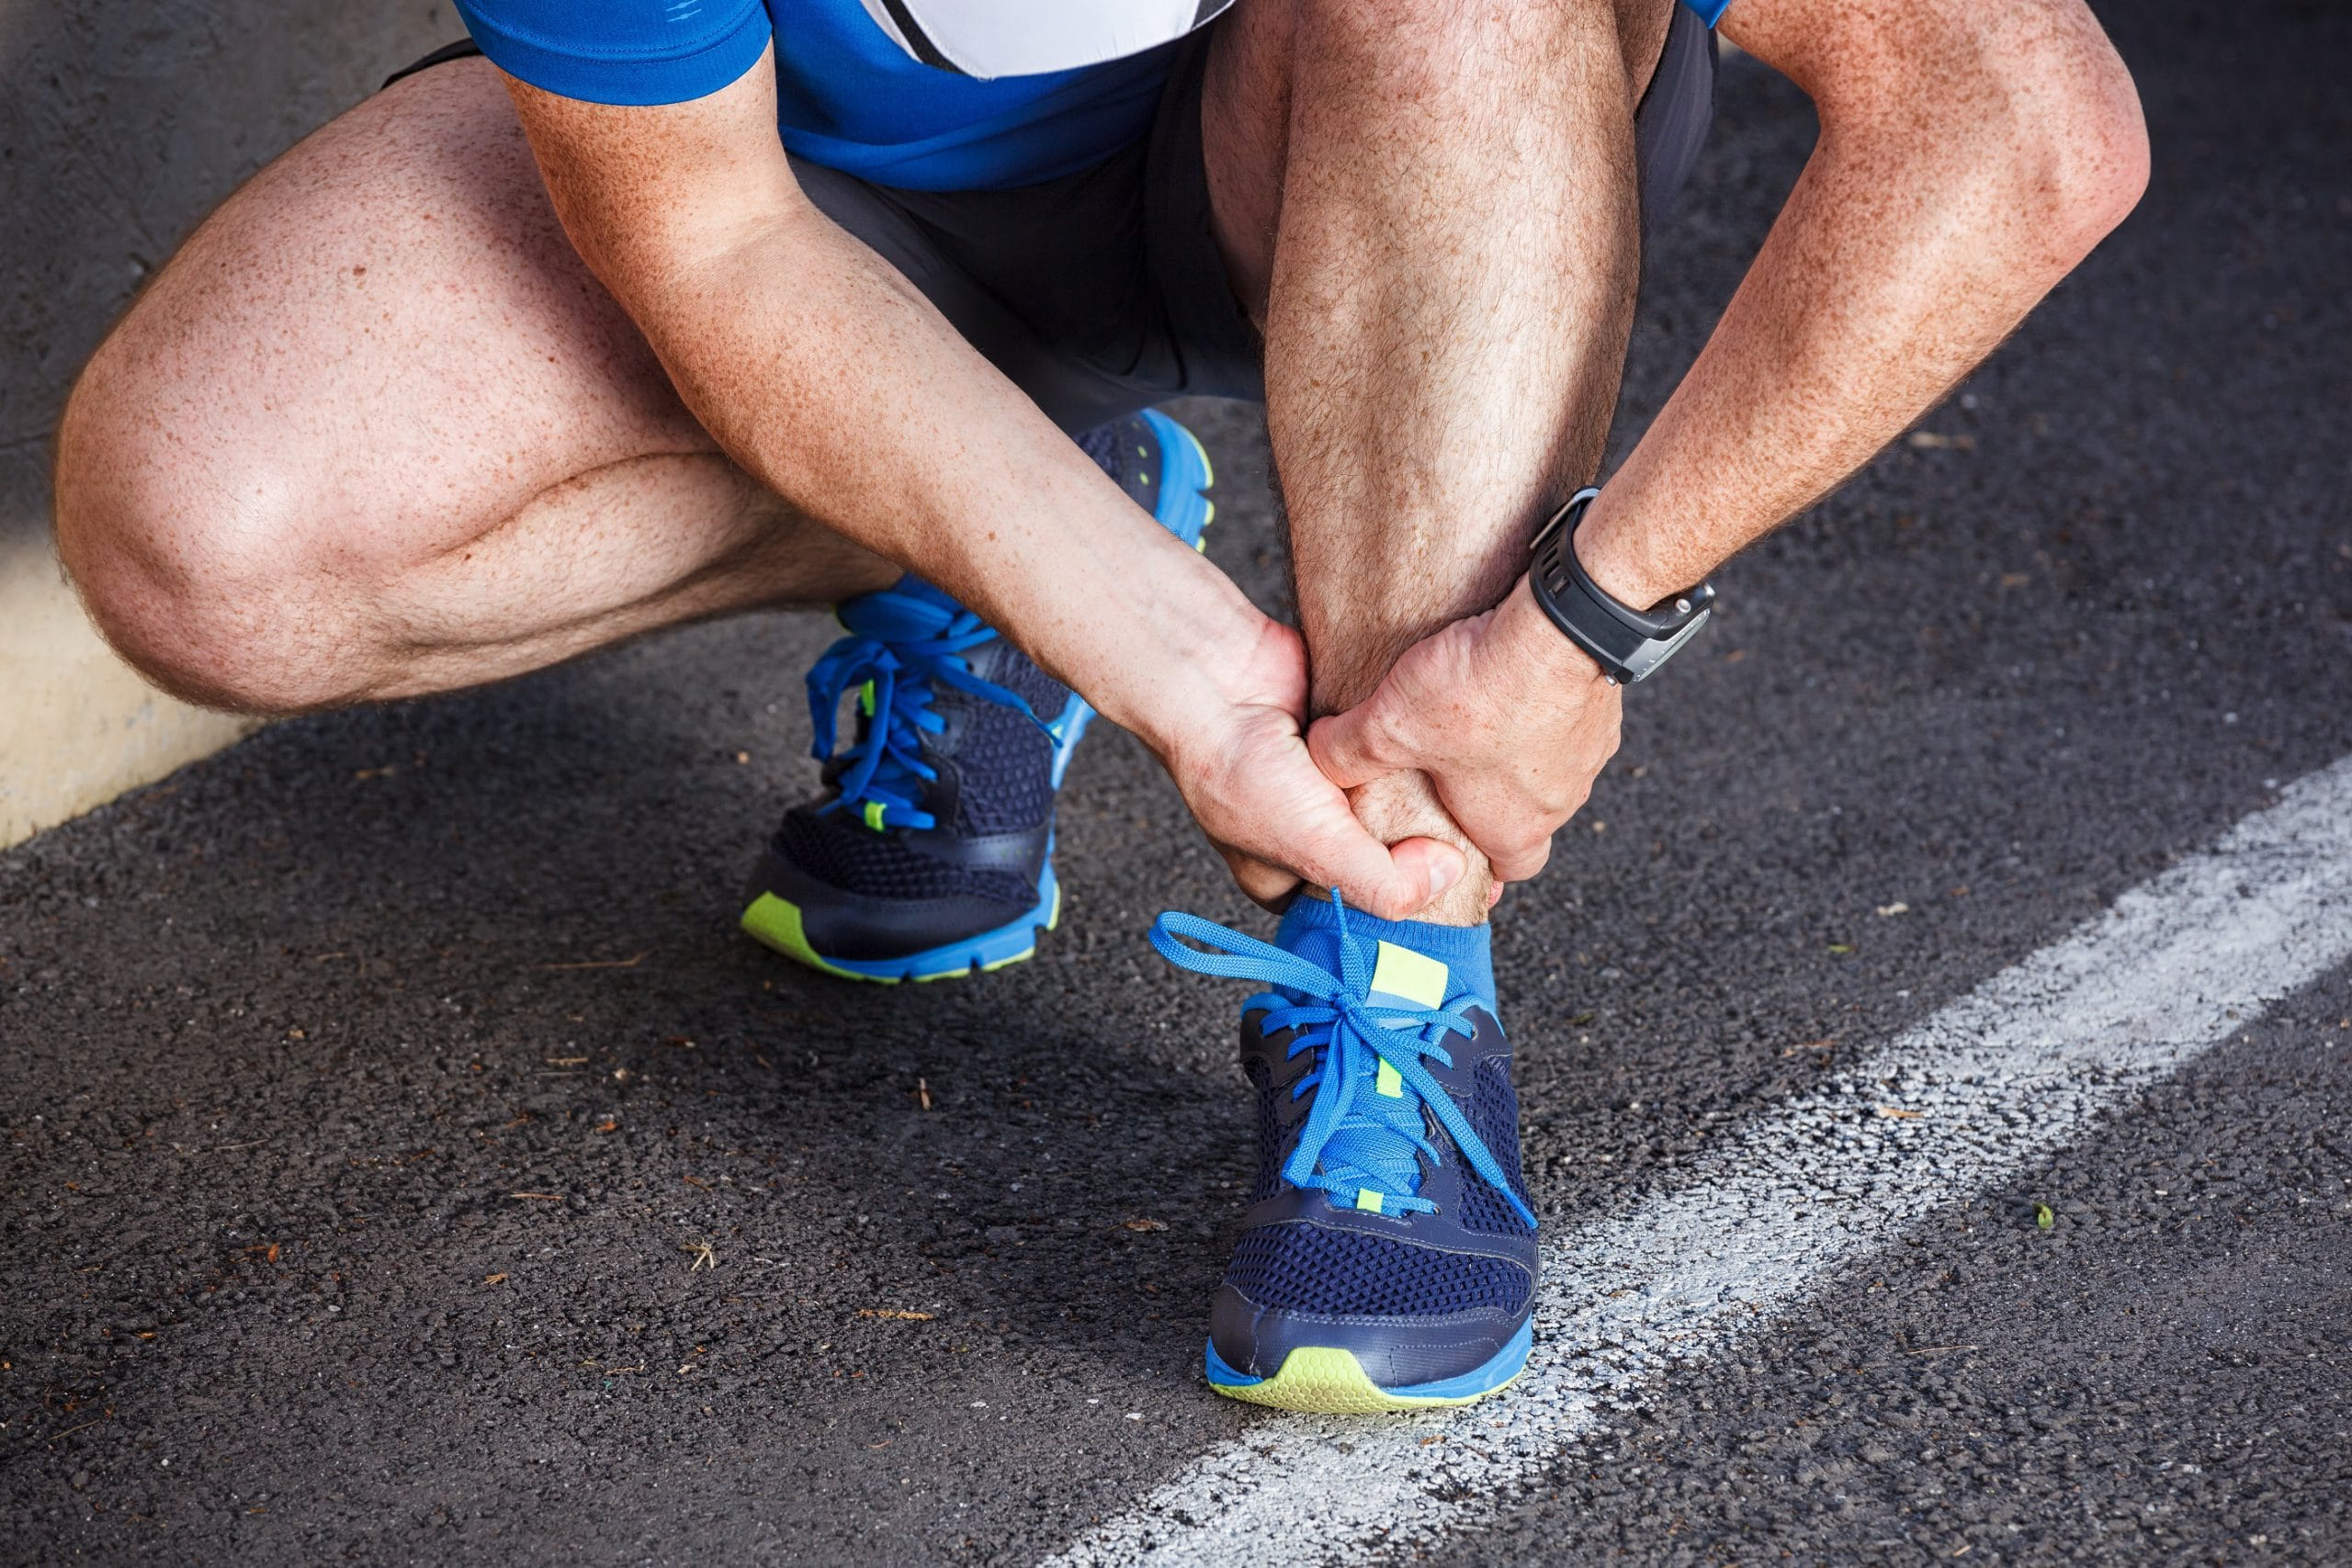 Why Do My Ankles Hurt When Running?